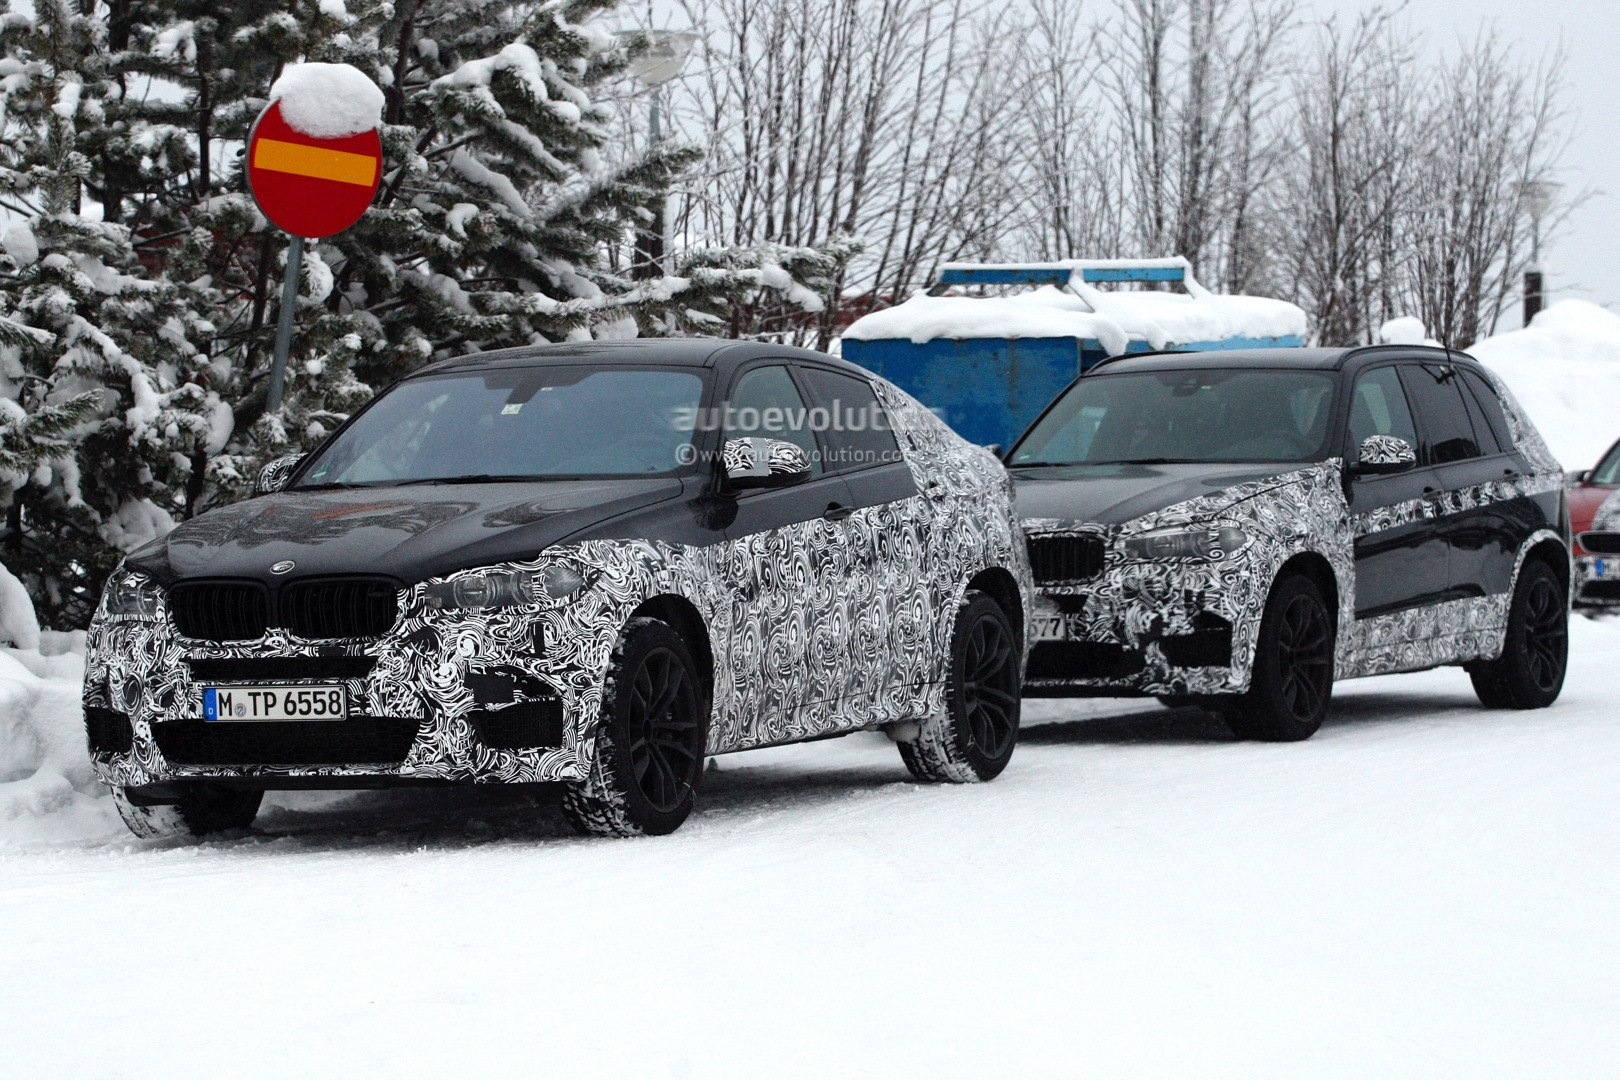 spyshots-b​mw-f86-x6-​m-spied-up​-close_7